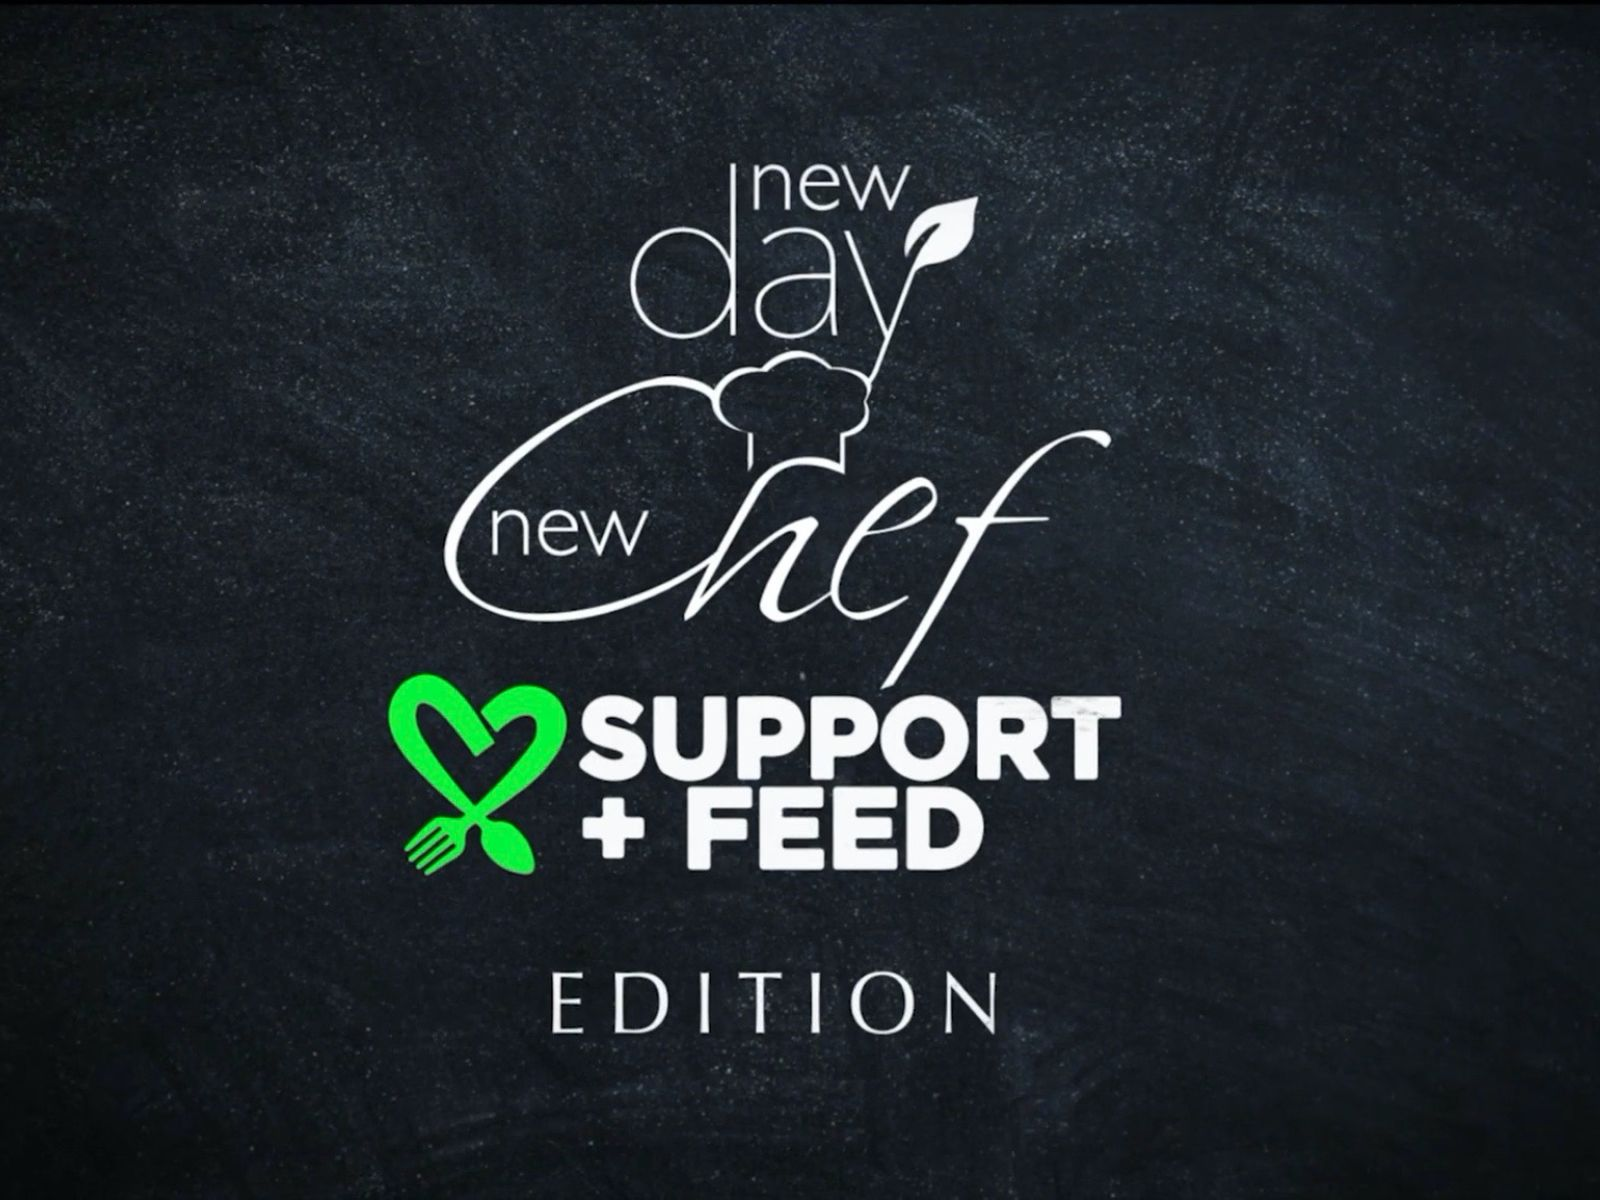 Maggie Baird's Support and Feed teams up with Amazon's Prime Video vegan cooking show New Day New Chef to highlight plant-based restaurants feeding those in need